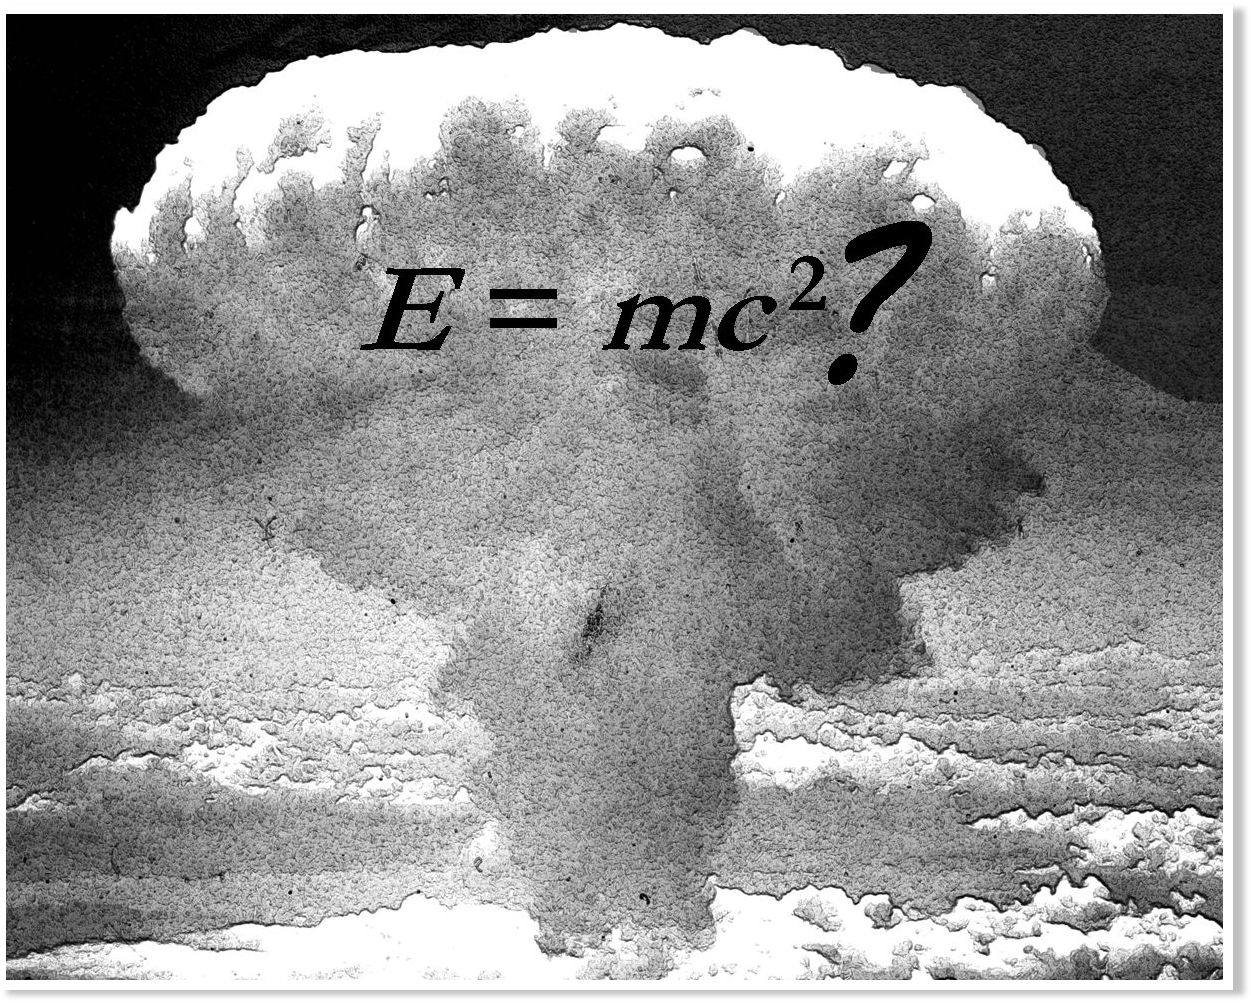 Chain Reaction: From Einstein to the Atomic Bomb